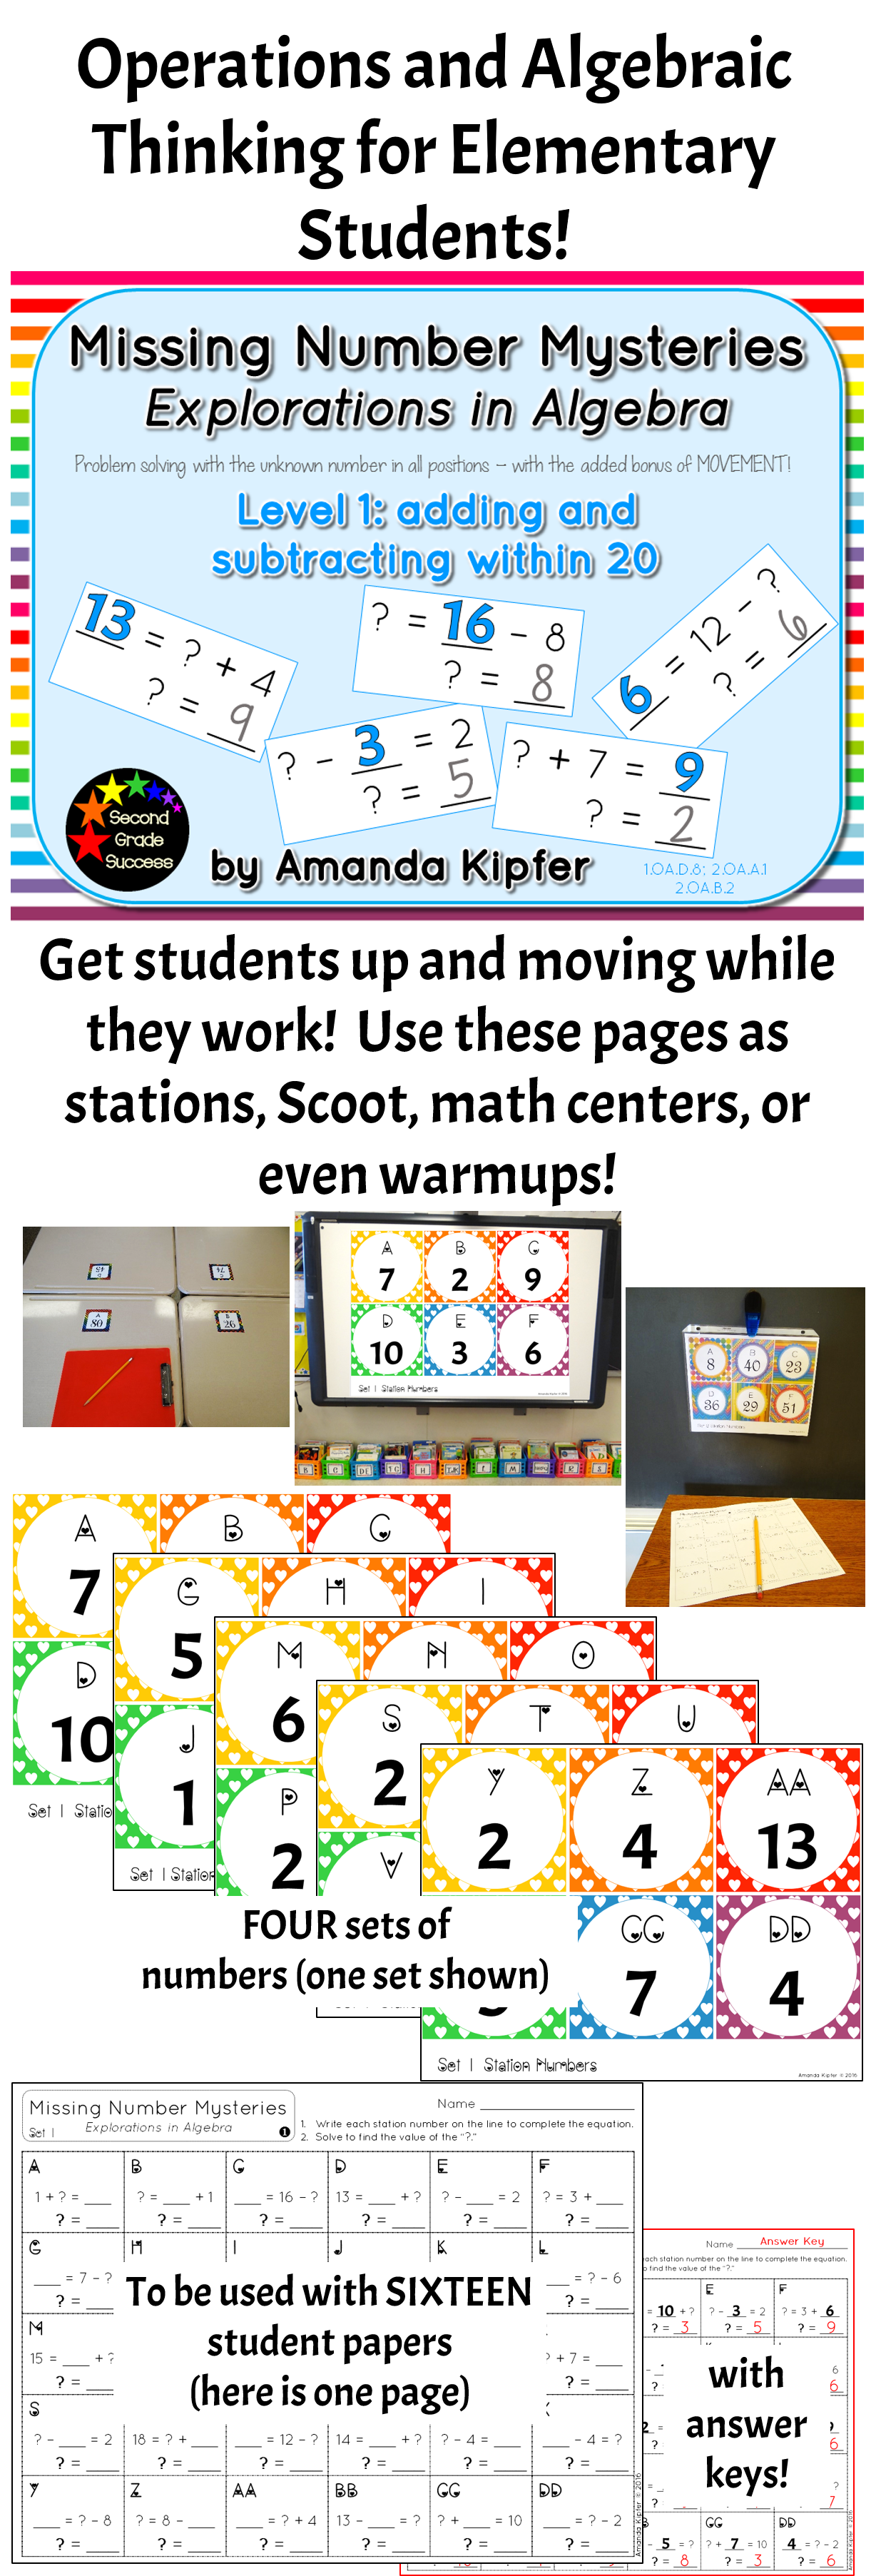 Missing Number Mysteries Explorations In Algebra Level 1